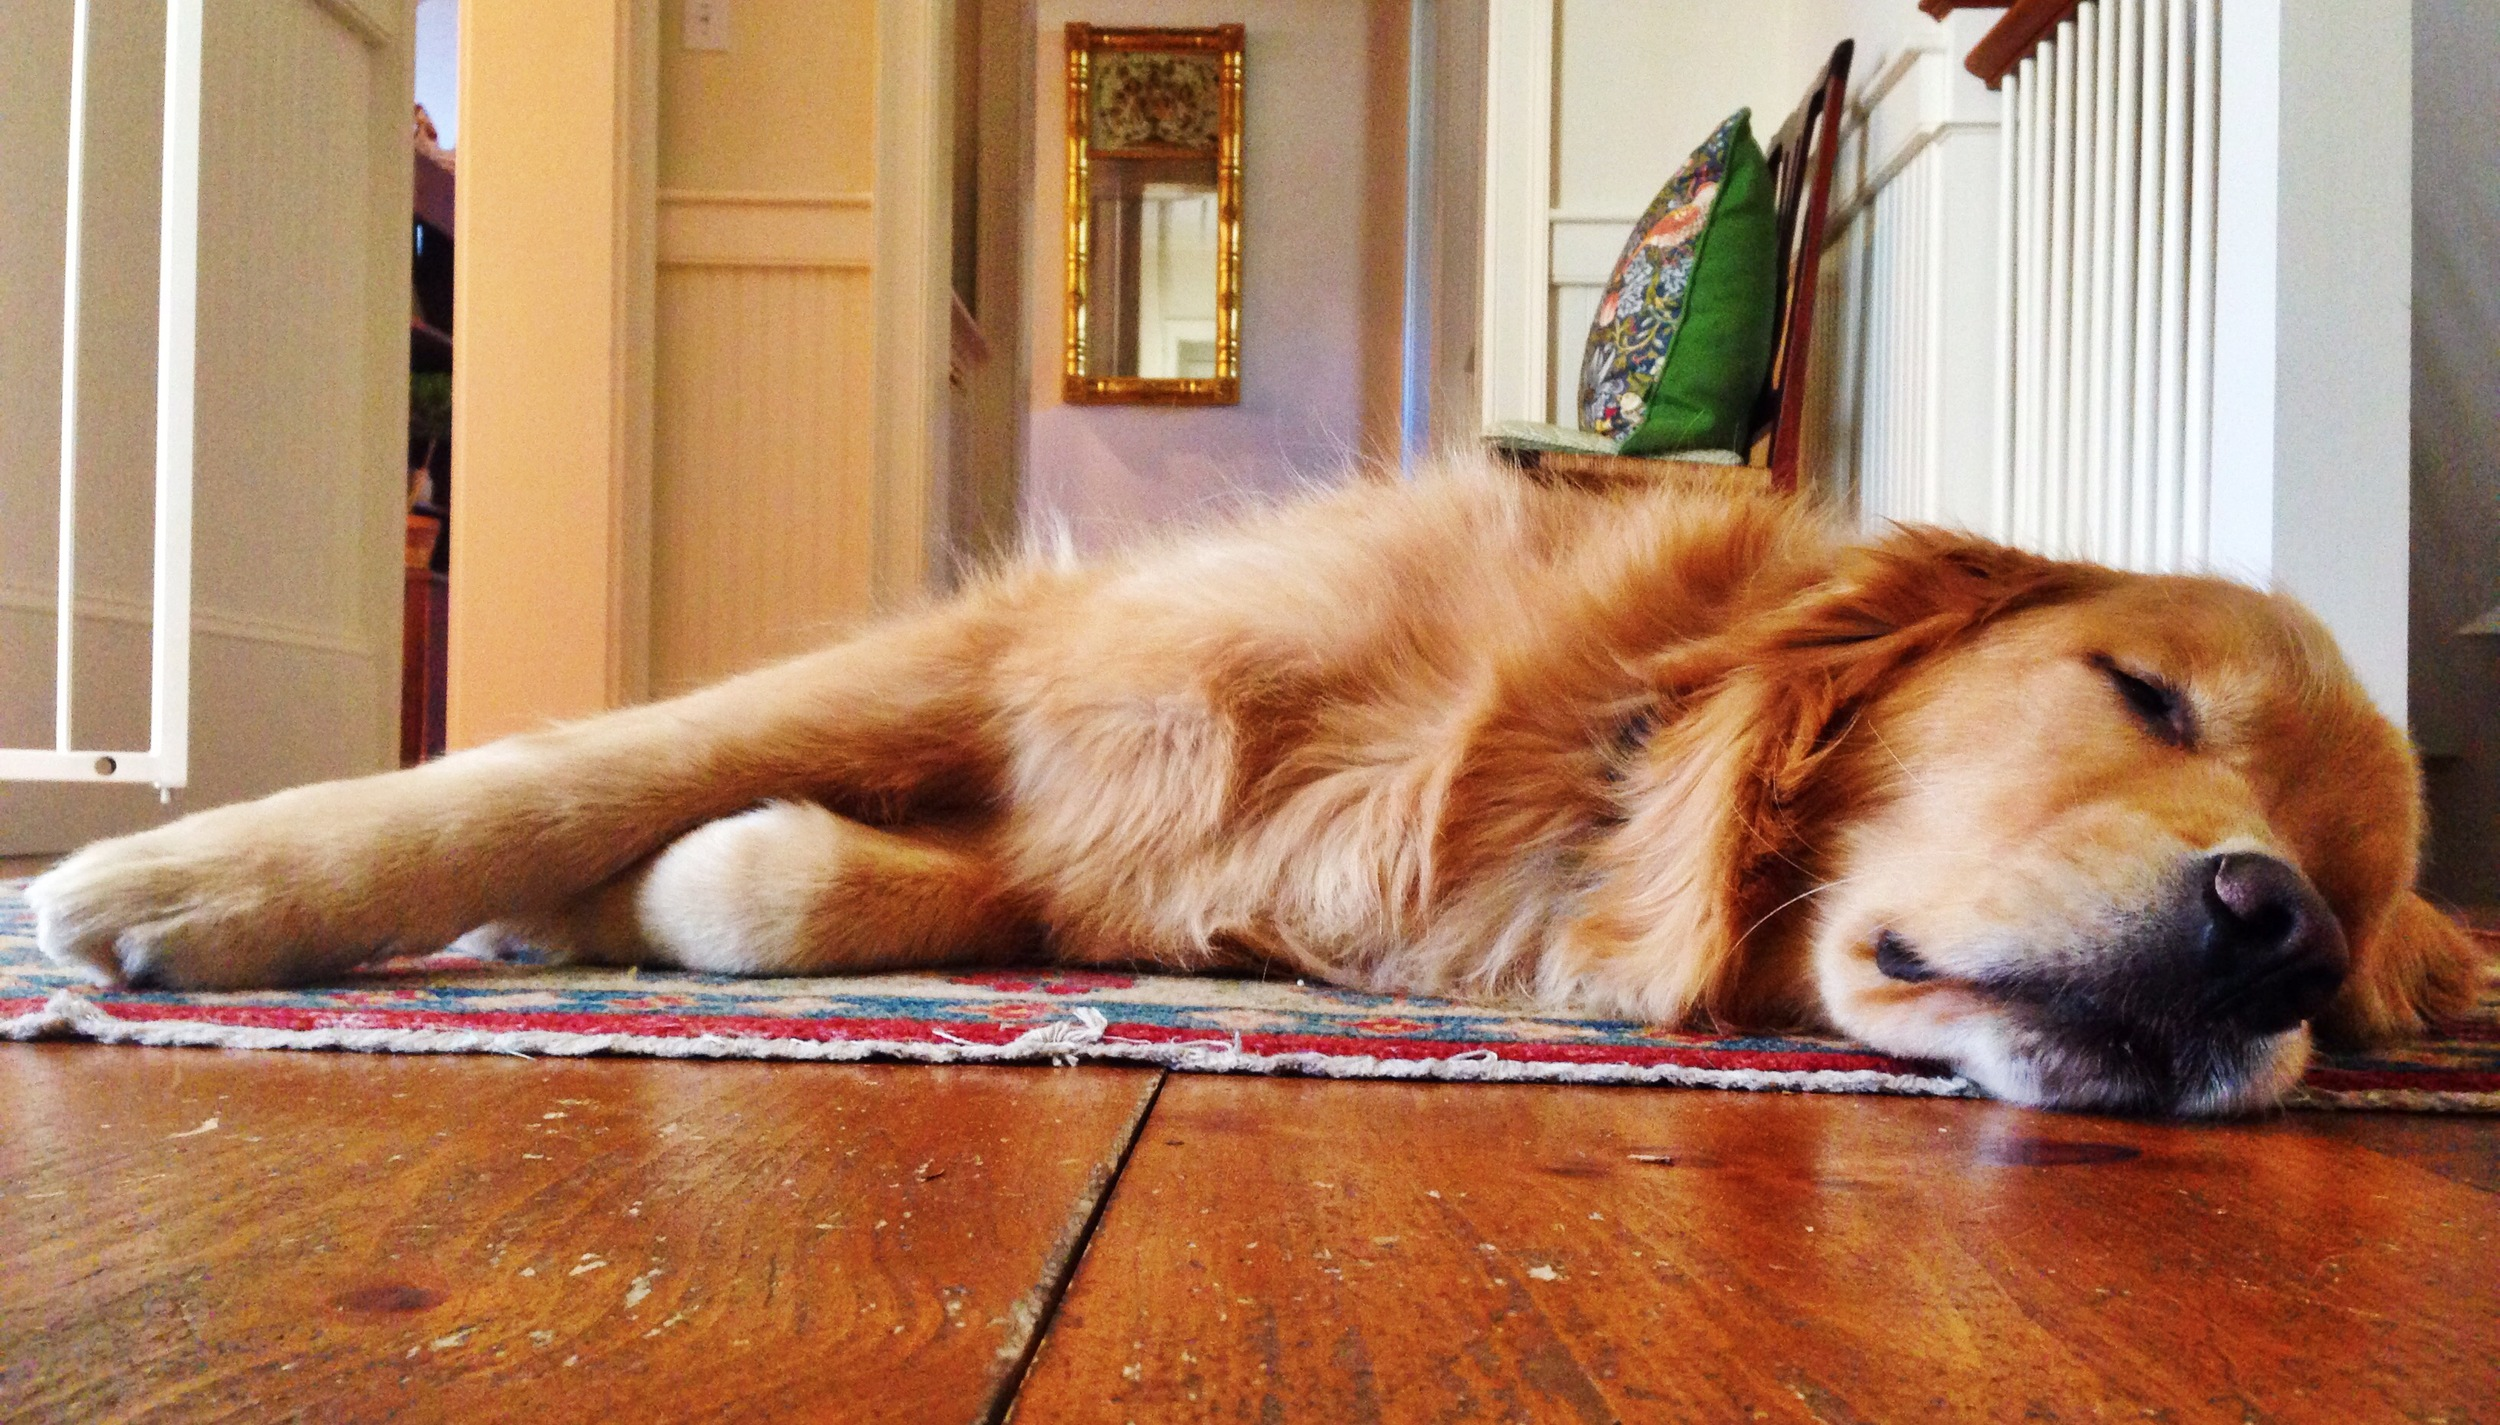 {What a stressed out dog I have}